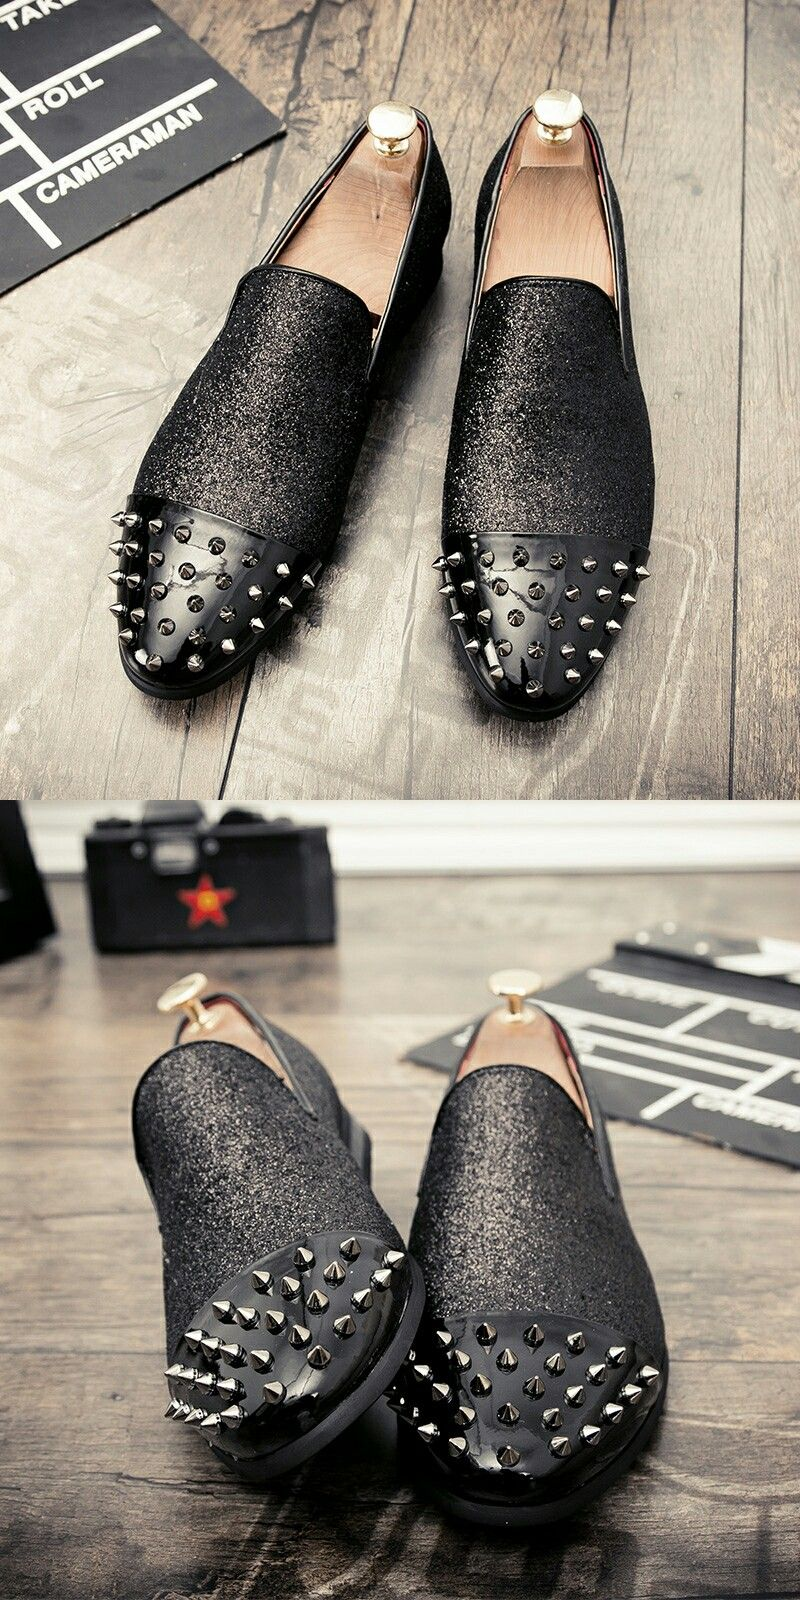 Us 29 05 Click To Buy Ectic 2018 Punk Style Men Loafers Toe Cap Black Spikes Rhinestones Glitter Casual S Loafers Men Mens Fashion Shoes Wedding Dress Shoes [ 1600 x 800 Pixel ]